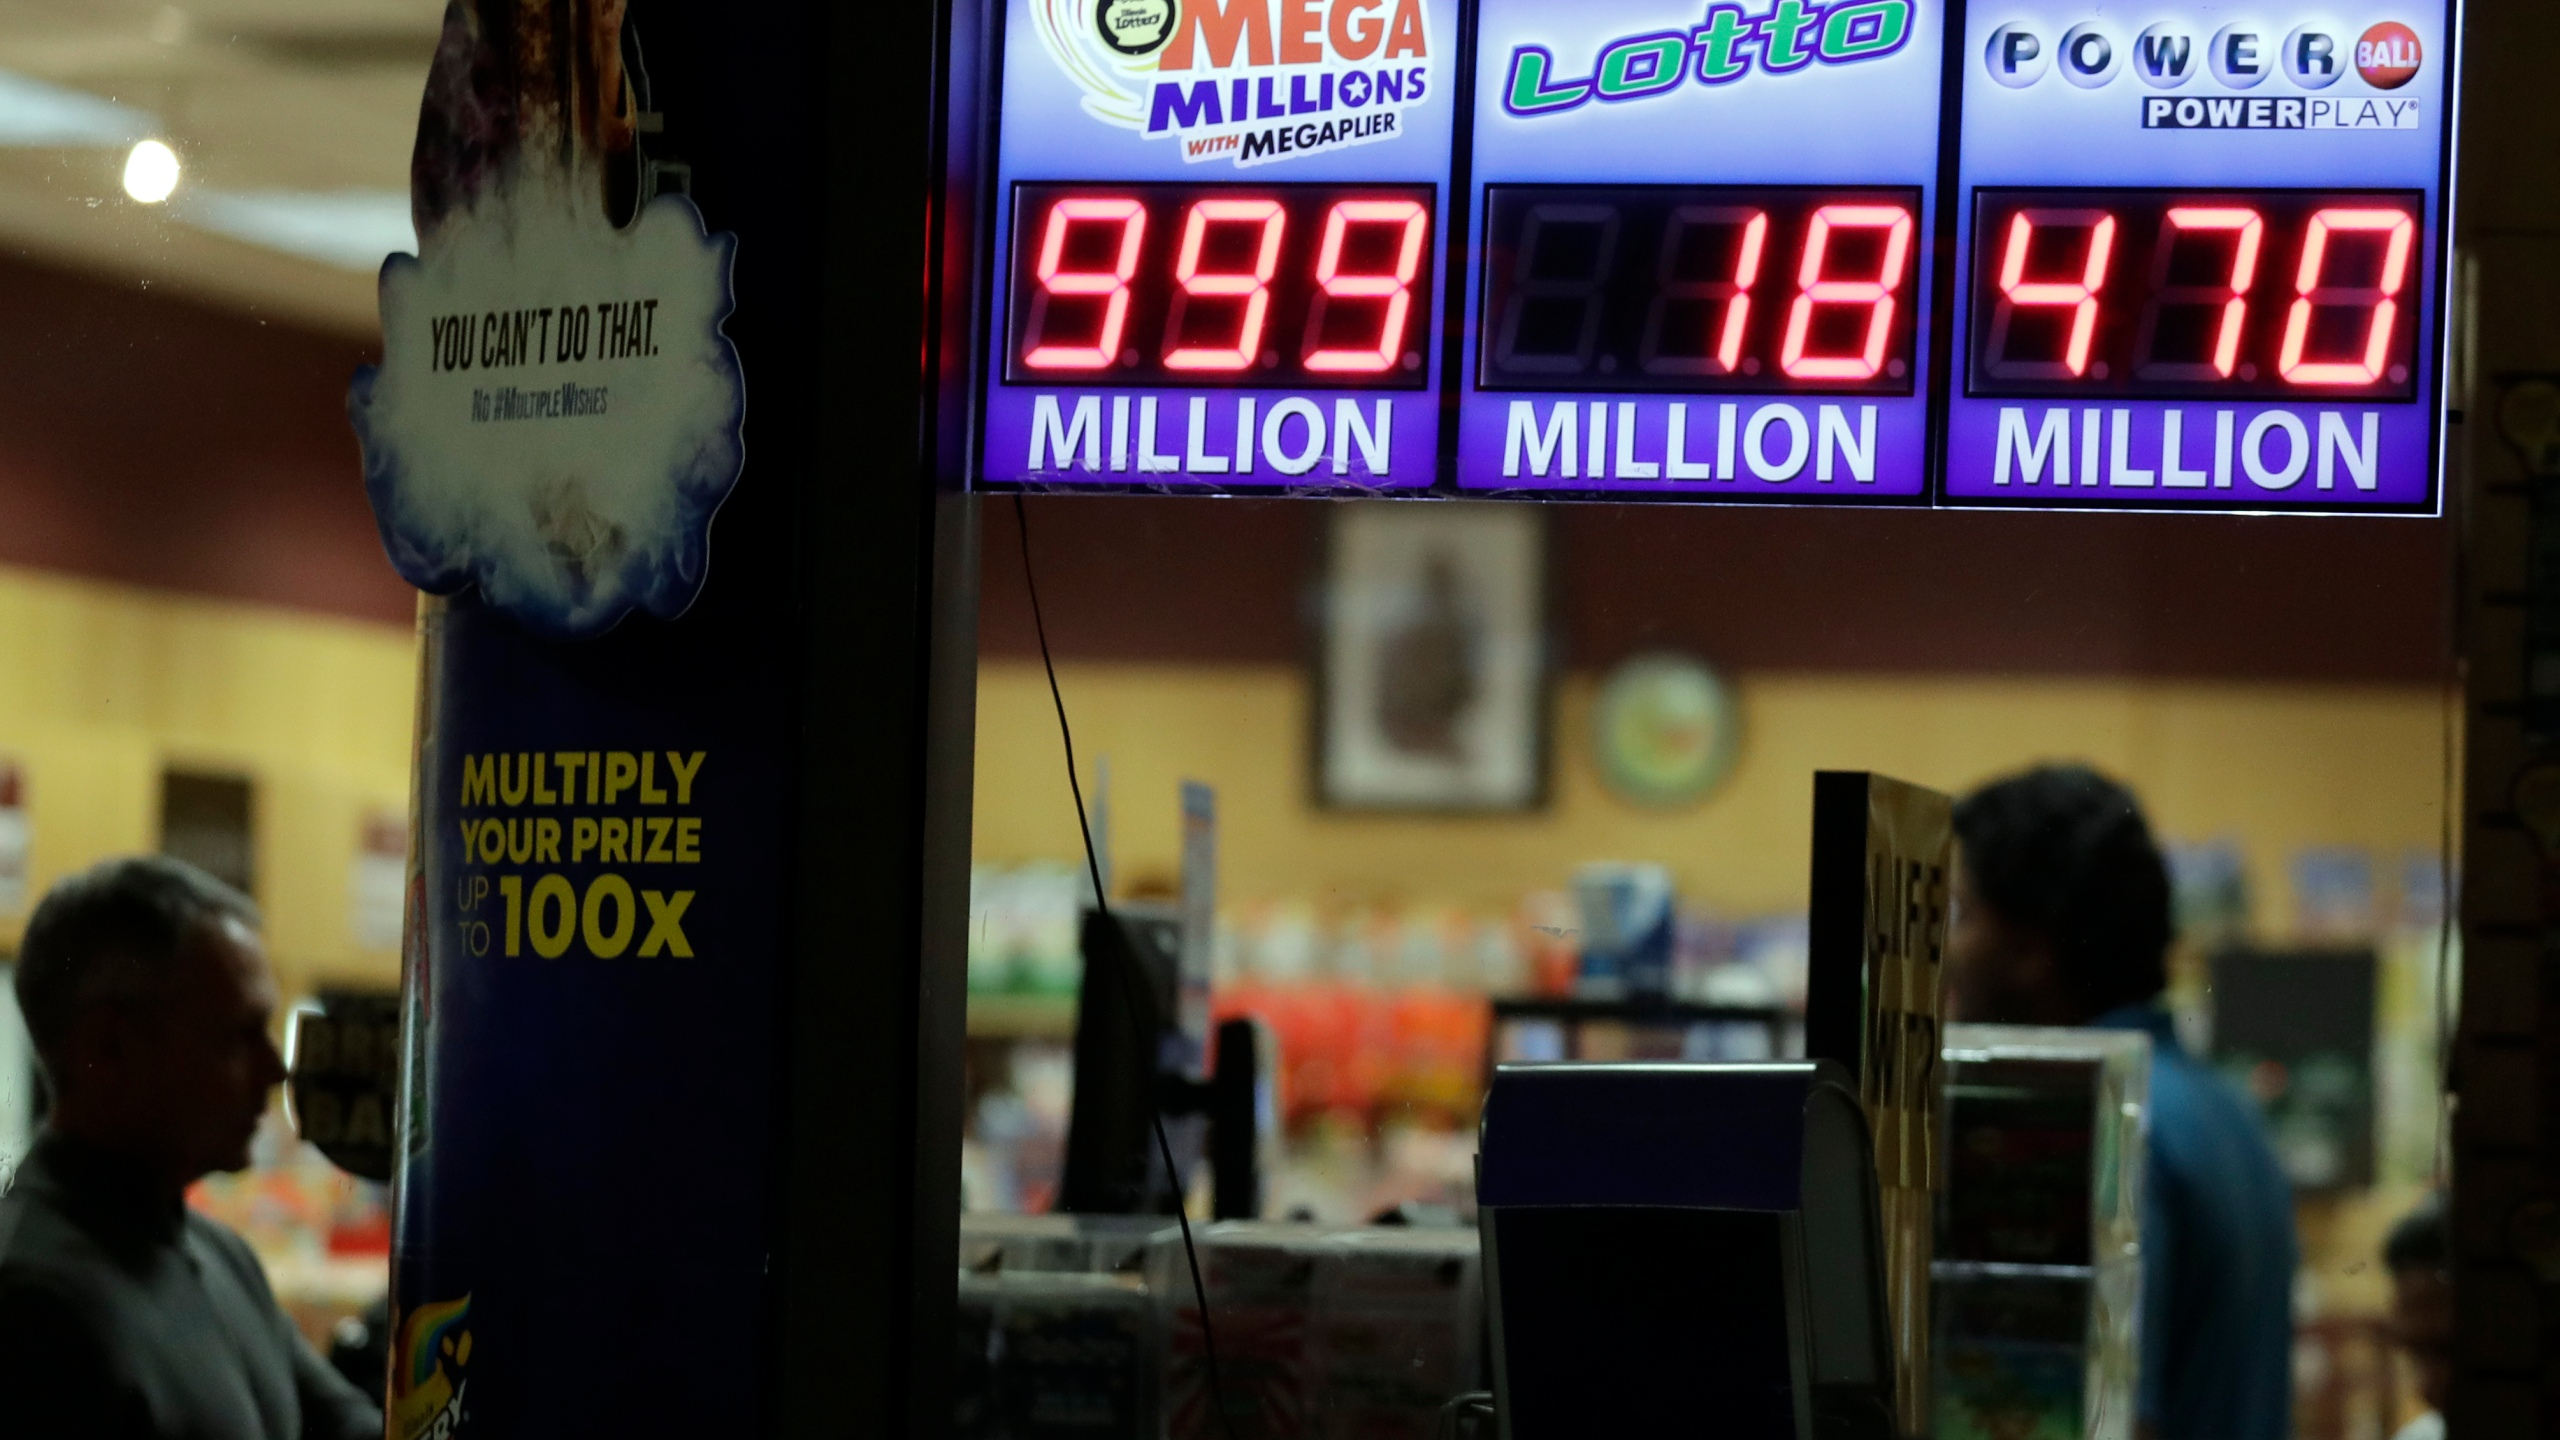 Check Your Tickets 1 6 Billion Mega Millions Jackpot Numbers Announced